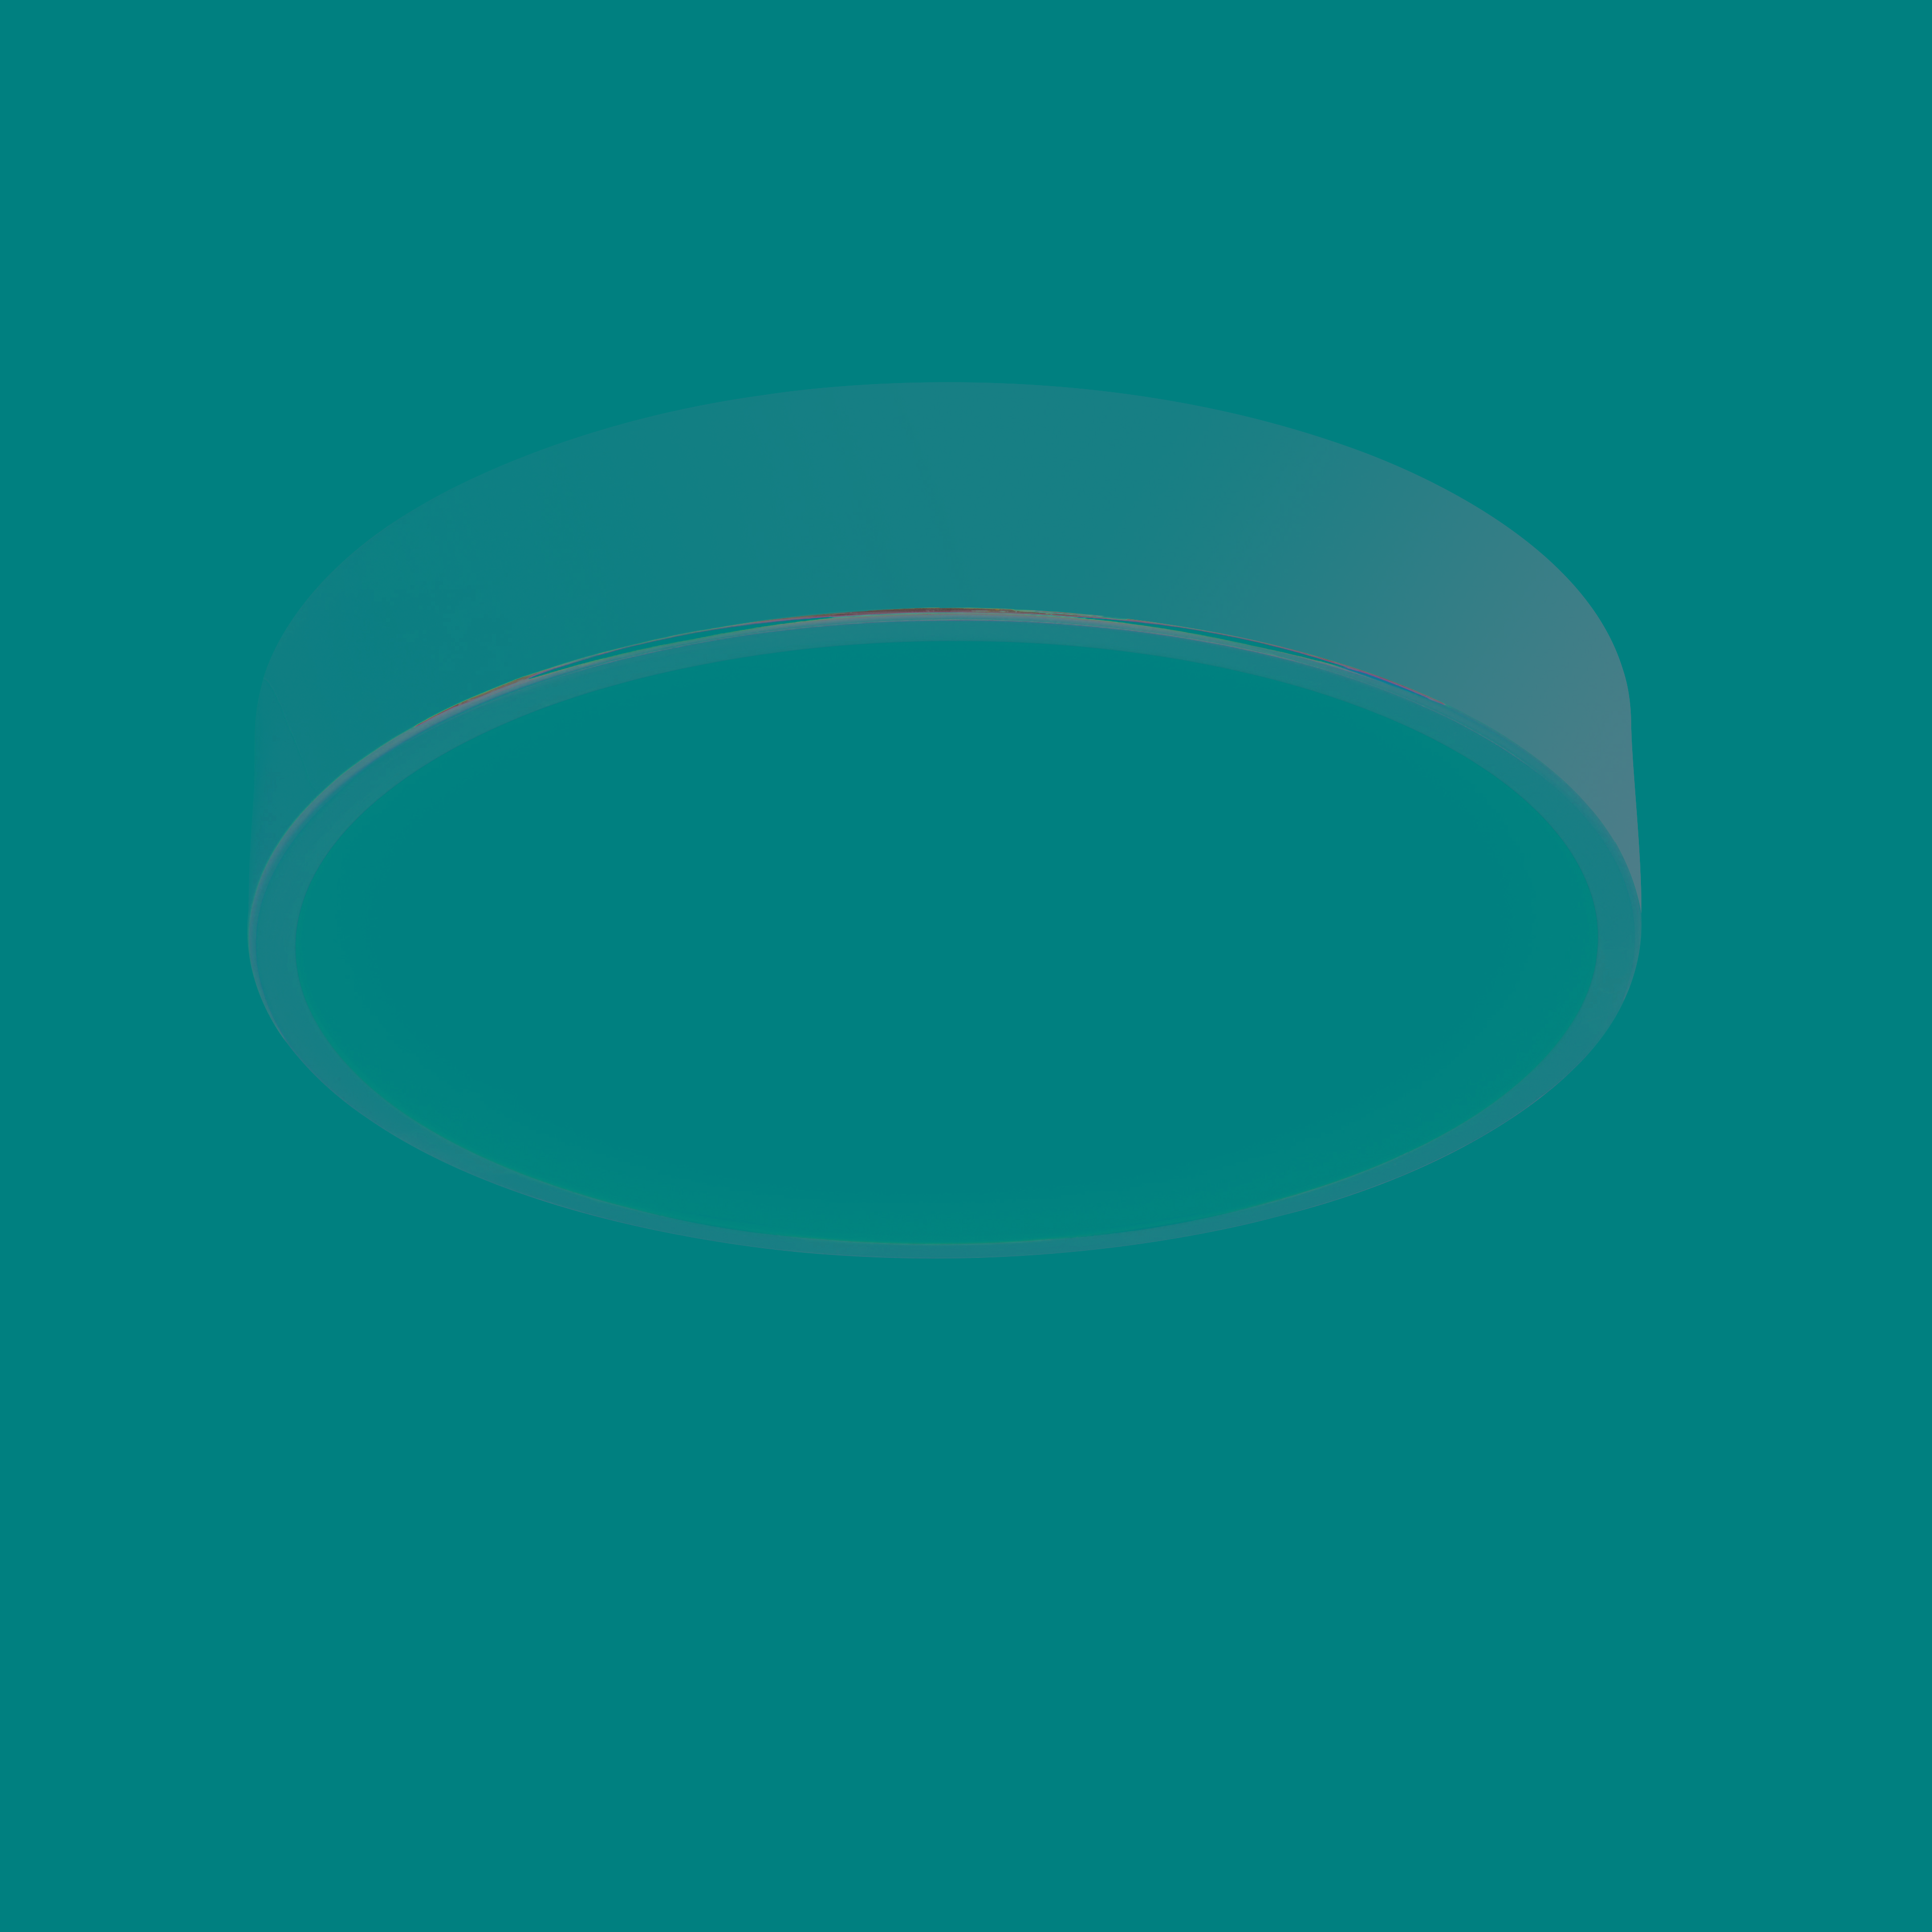 Endon 72456 Lipco Ceiling Light LED 15W